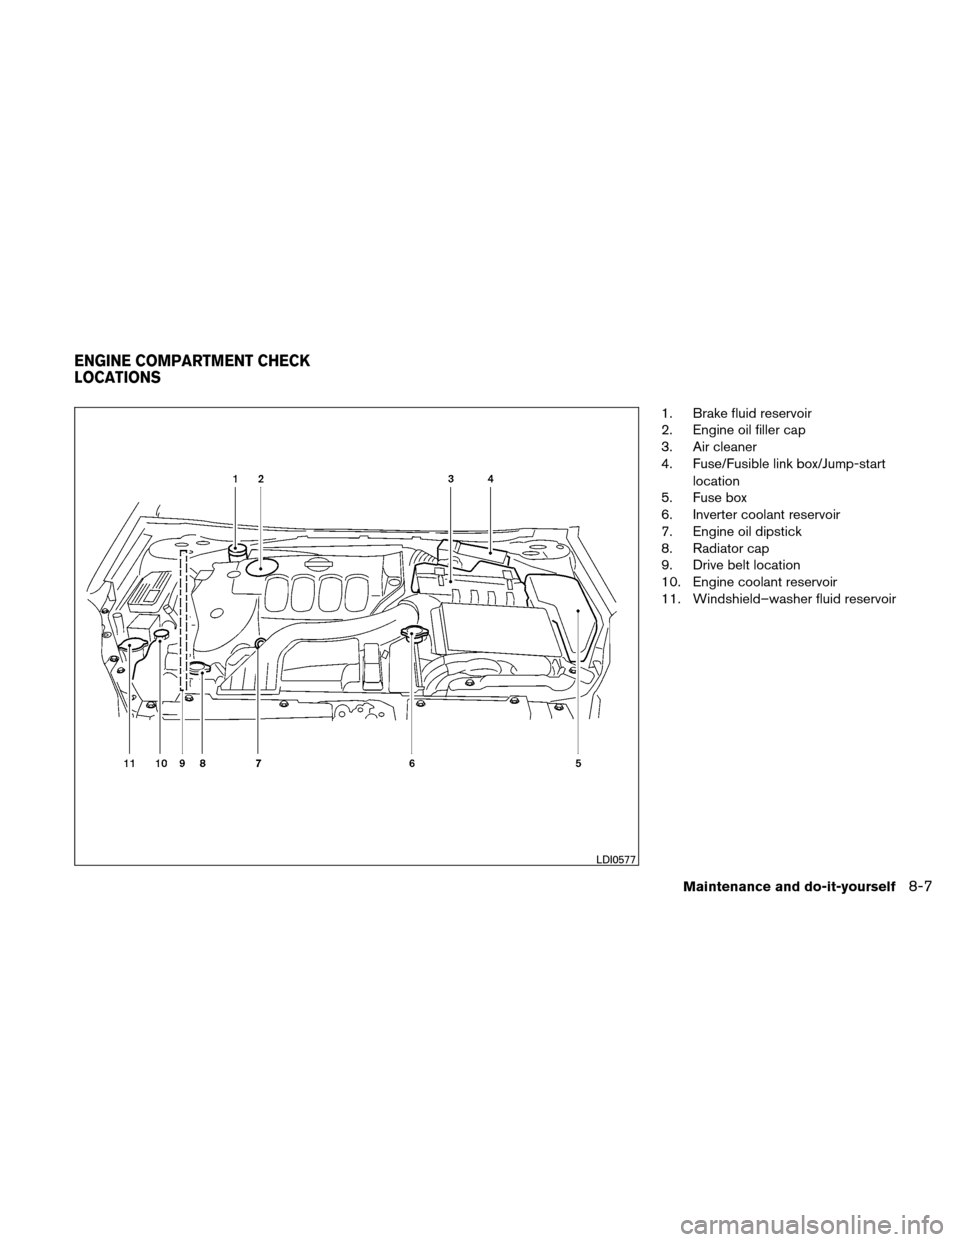 NISSAN ALTIMA HYBRID 2010 L32A / 4.G Owners Manual, Page 350